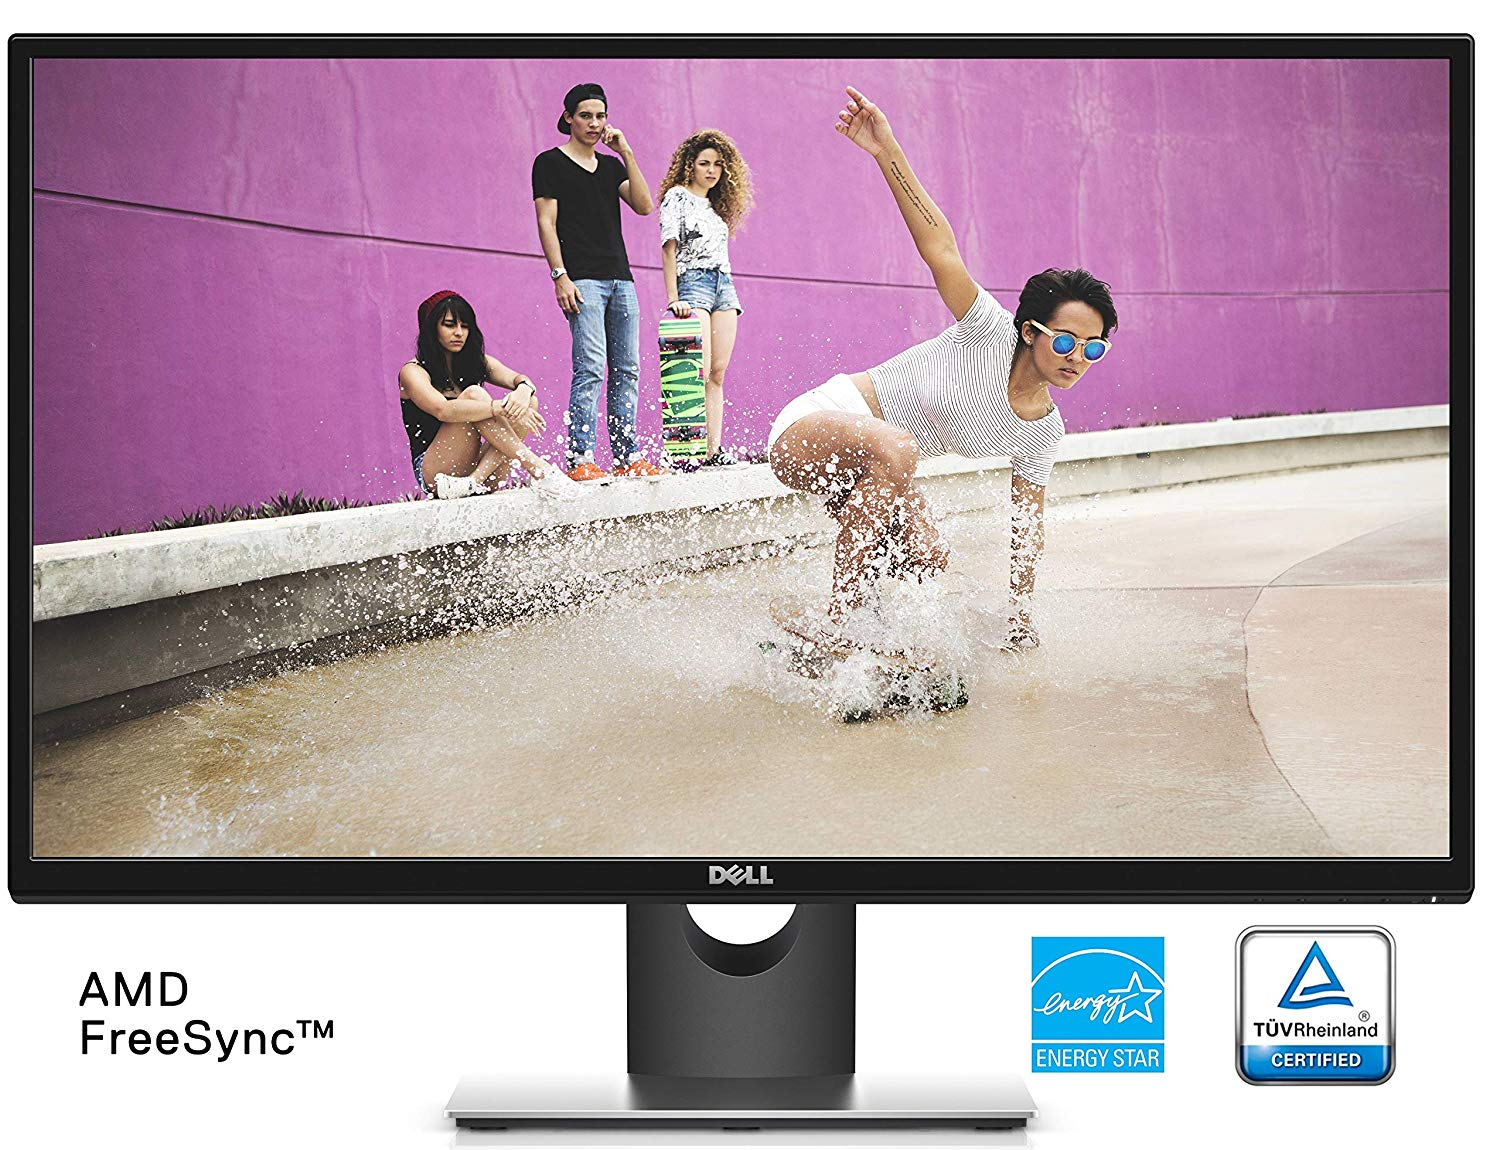 Dell SE2717H 27 Inch IPS LED-backlit LCD Monitor(6 ms, Full HD 1920 x 1080 at 75 Hz, AMD Free-Sync, VGA)